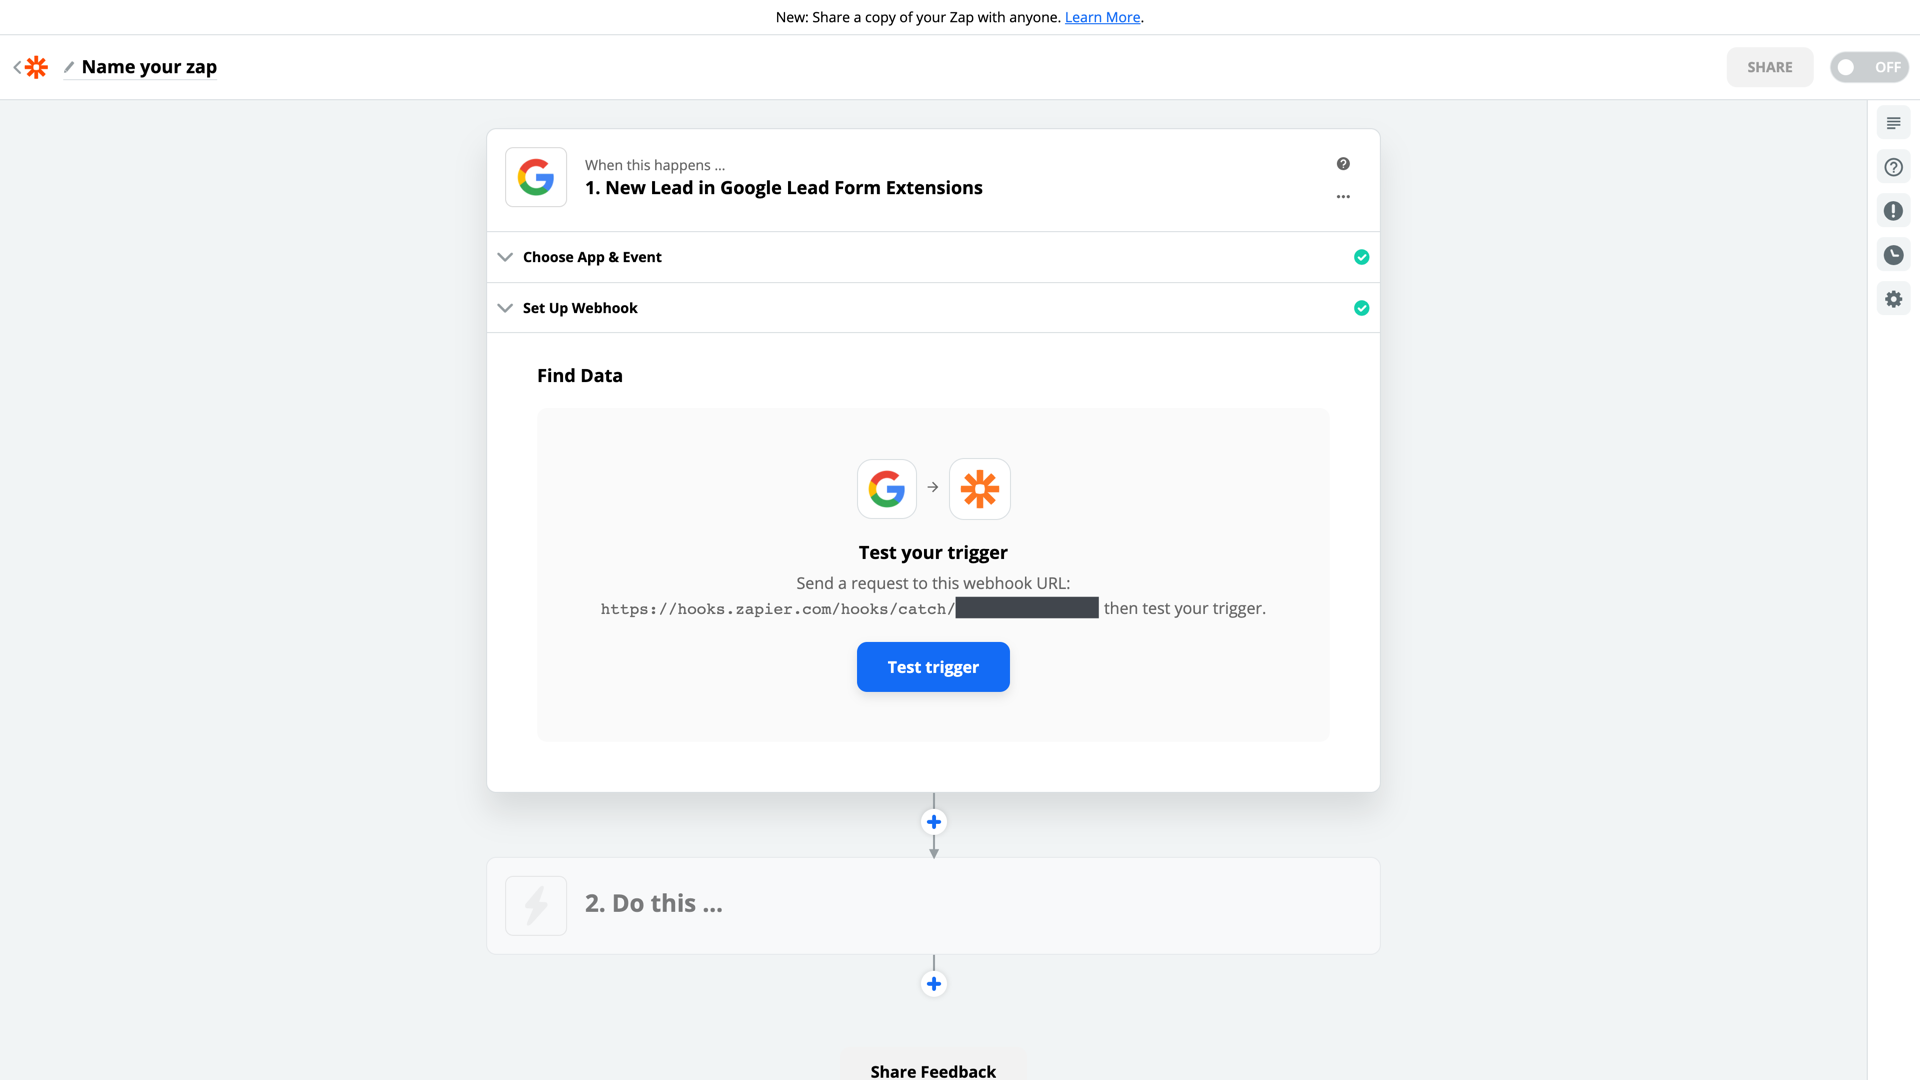 Google Lead Form Extension connection successful